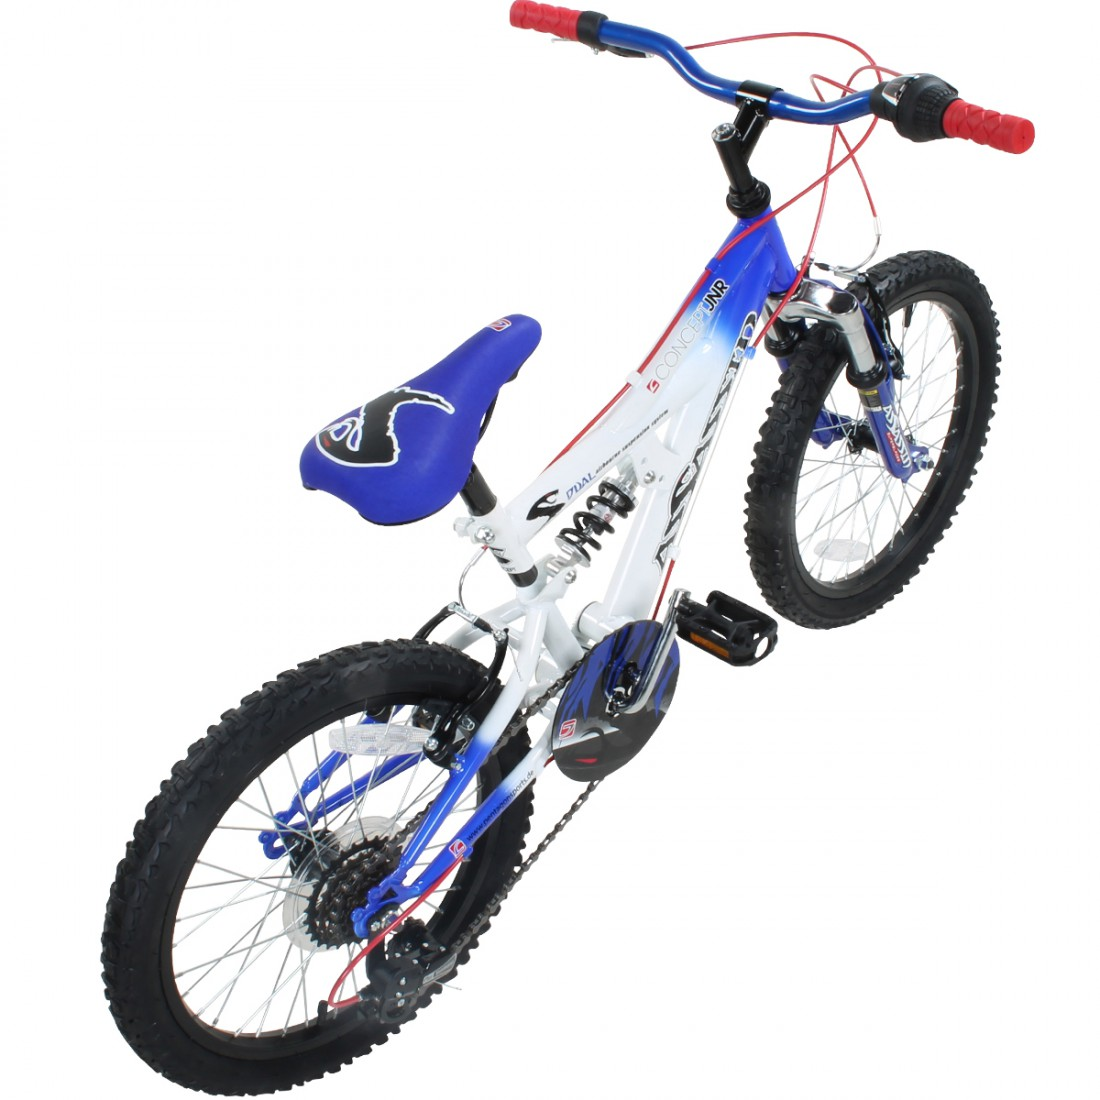 18 oder 20 Zoll Kinder MTB Concept Assassin Mountainbike Fully ...